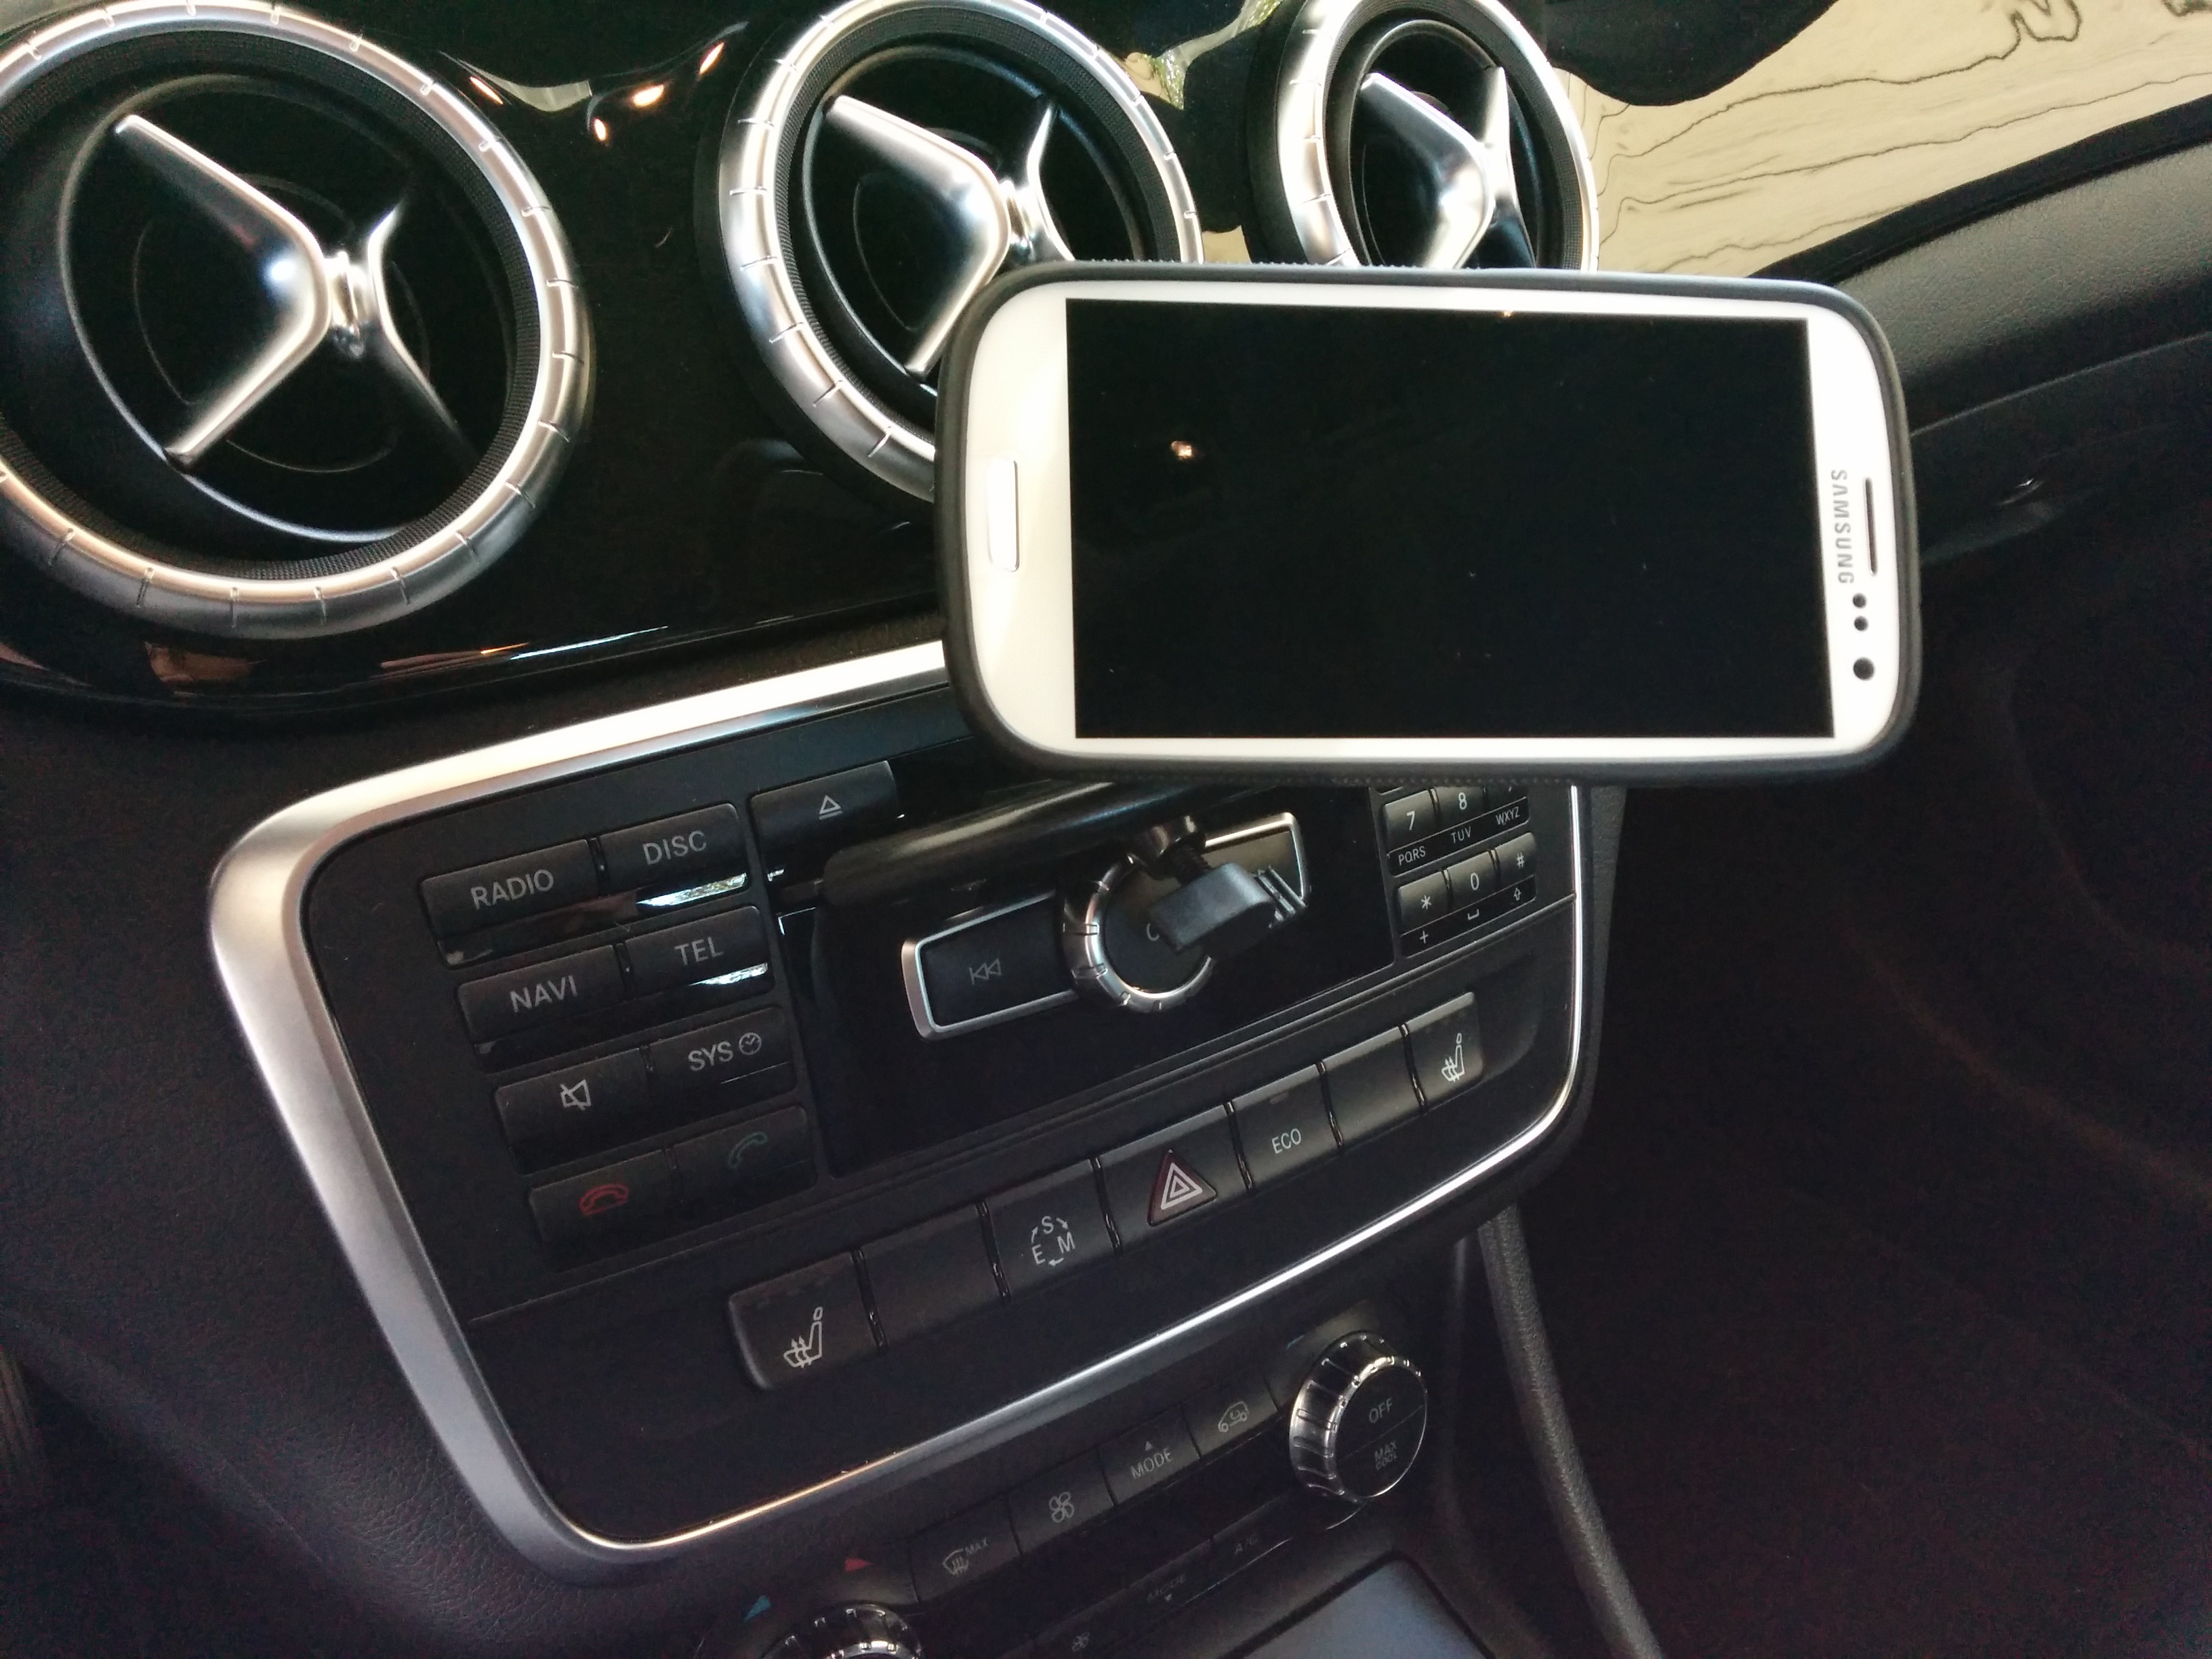 Phone cup holder for Mercedes benz cell phone cradle